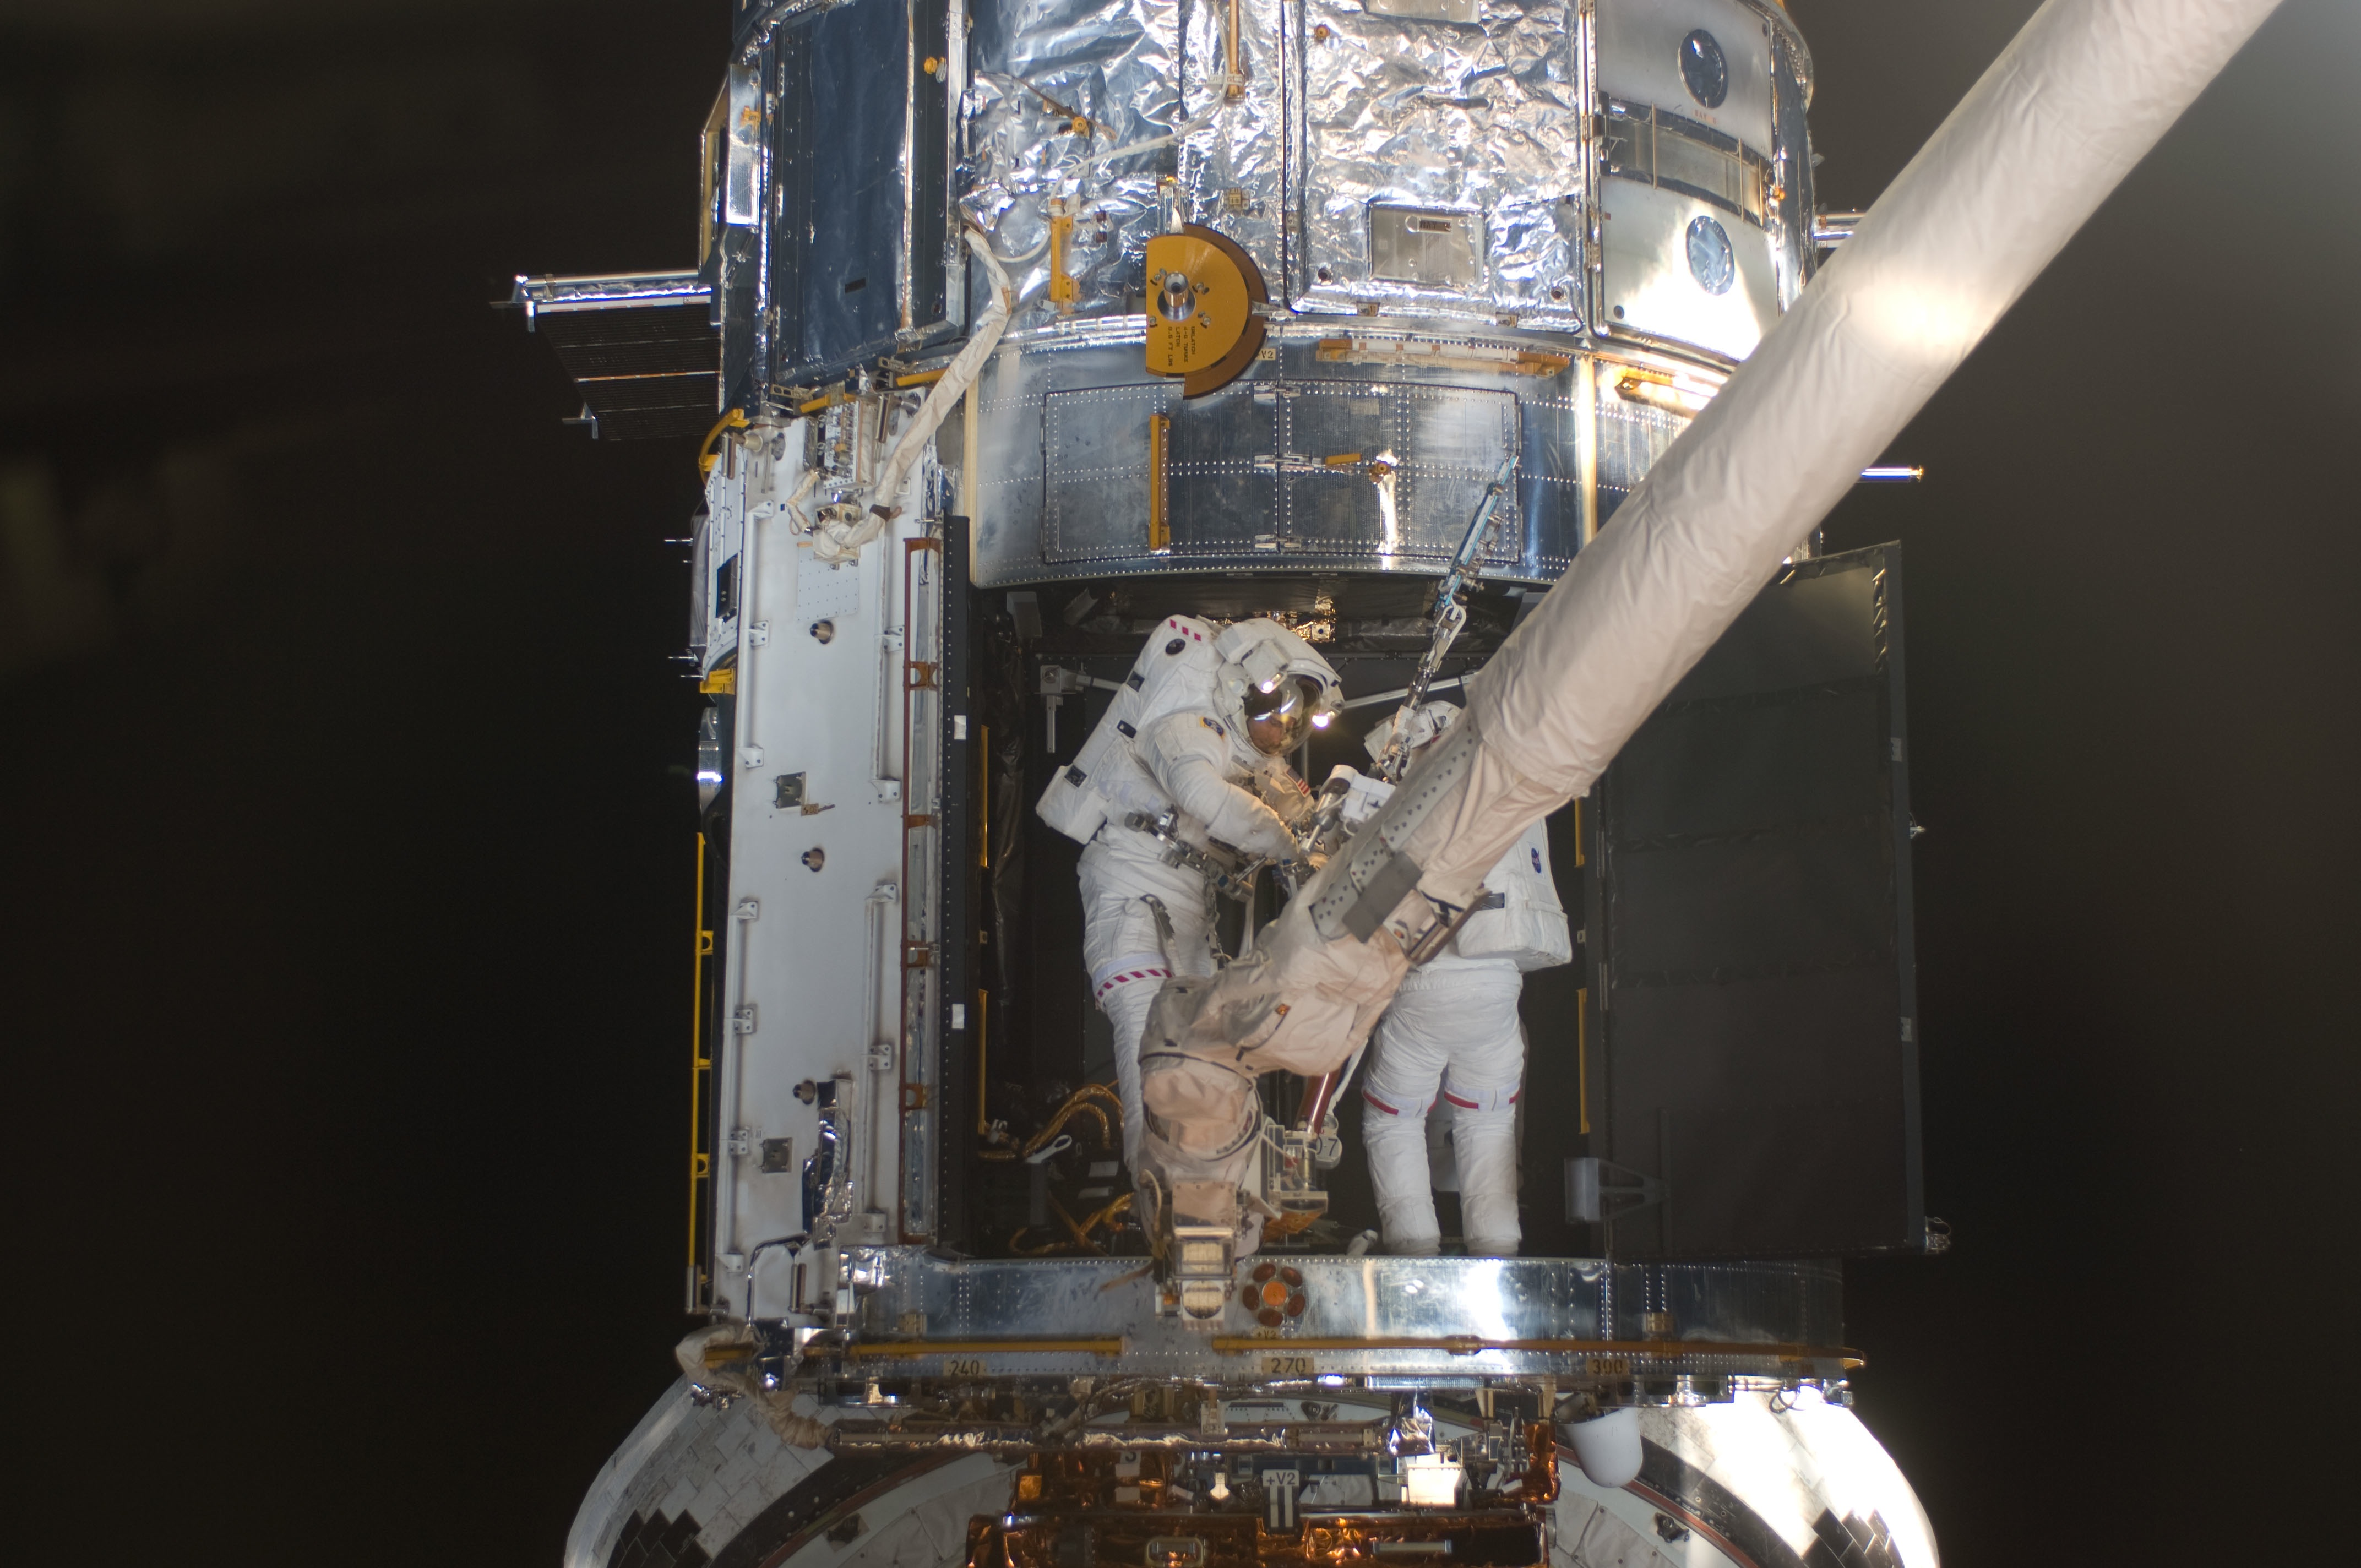 Astronauts fixing Hubble during STS-125